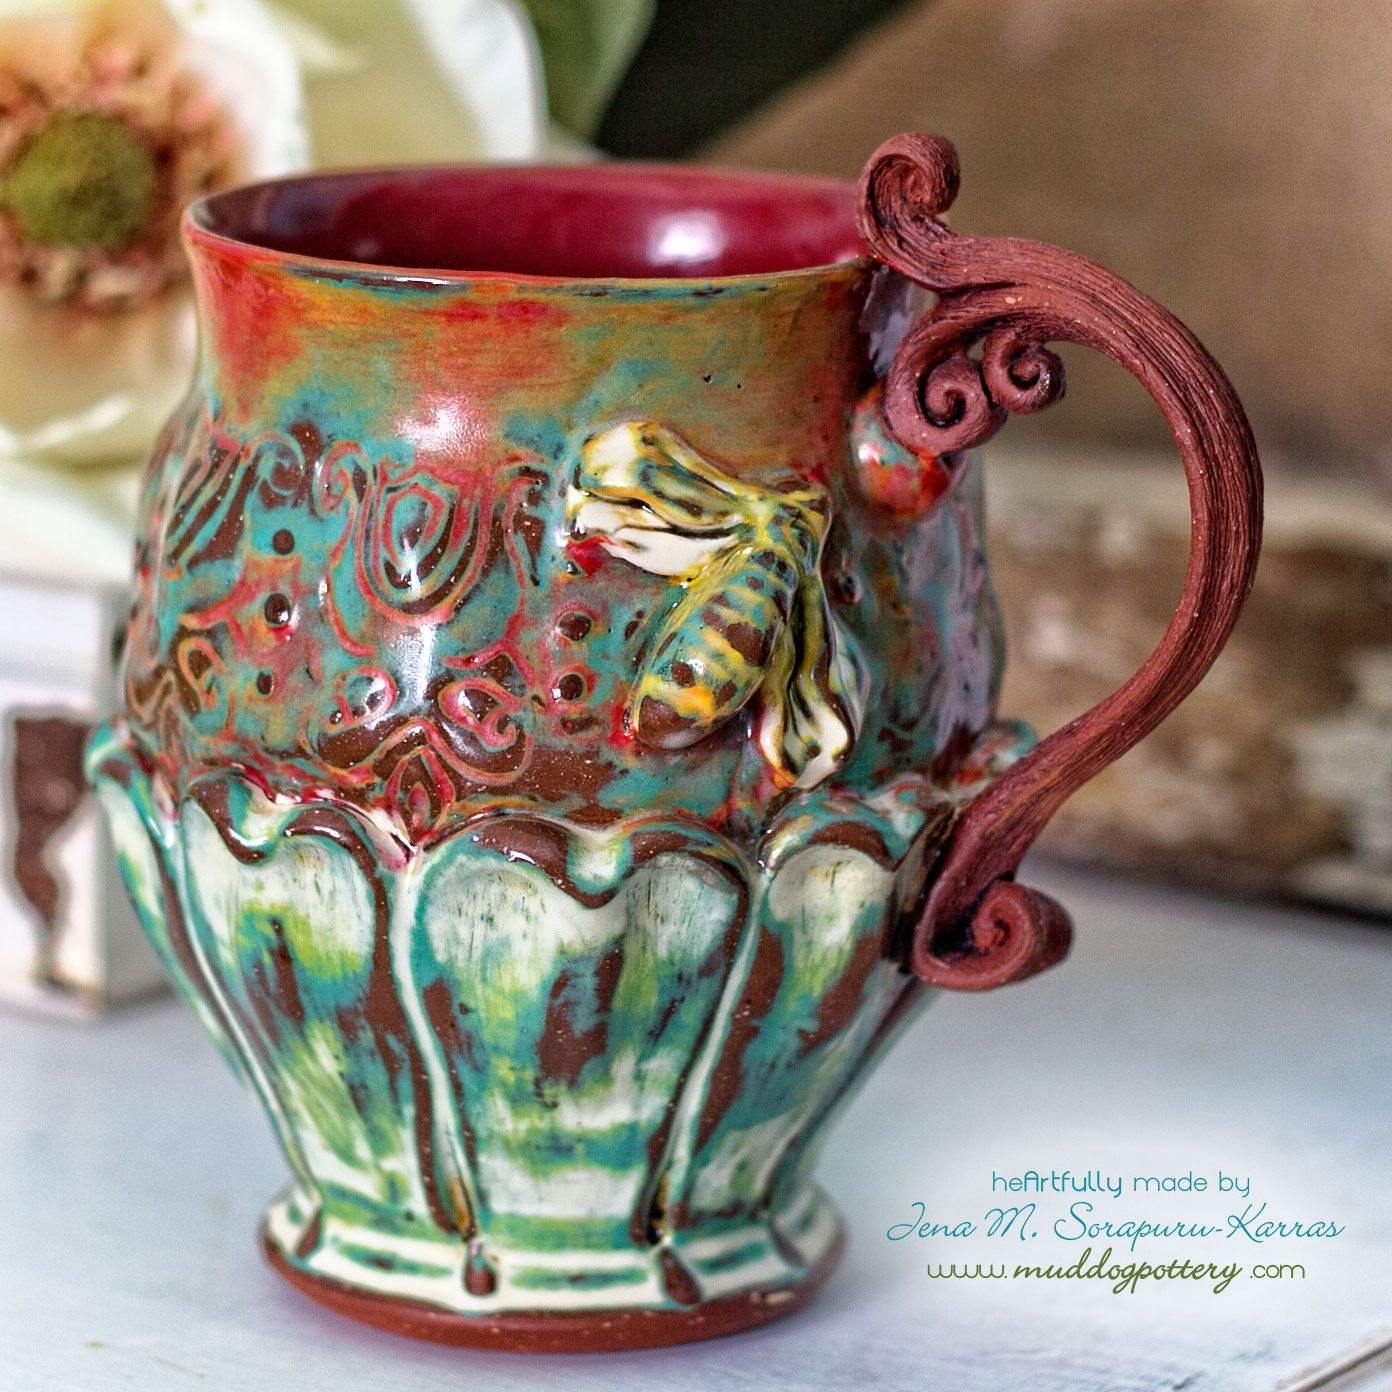 Honeybee Teacup with Wooden Handle(The Creole House Collection)